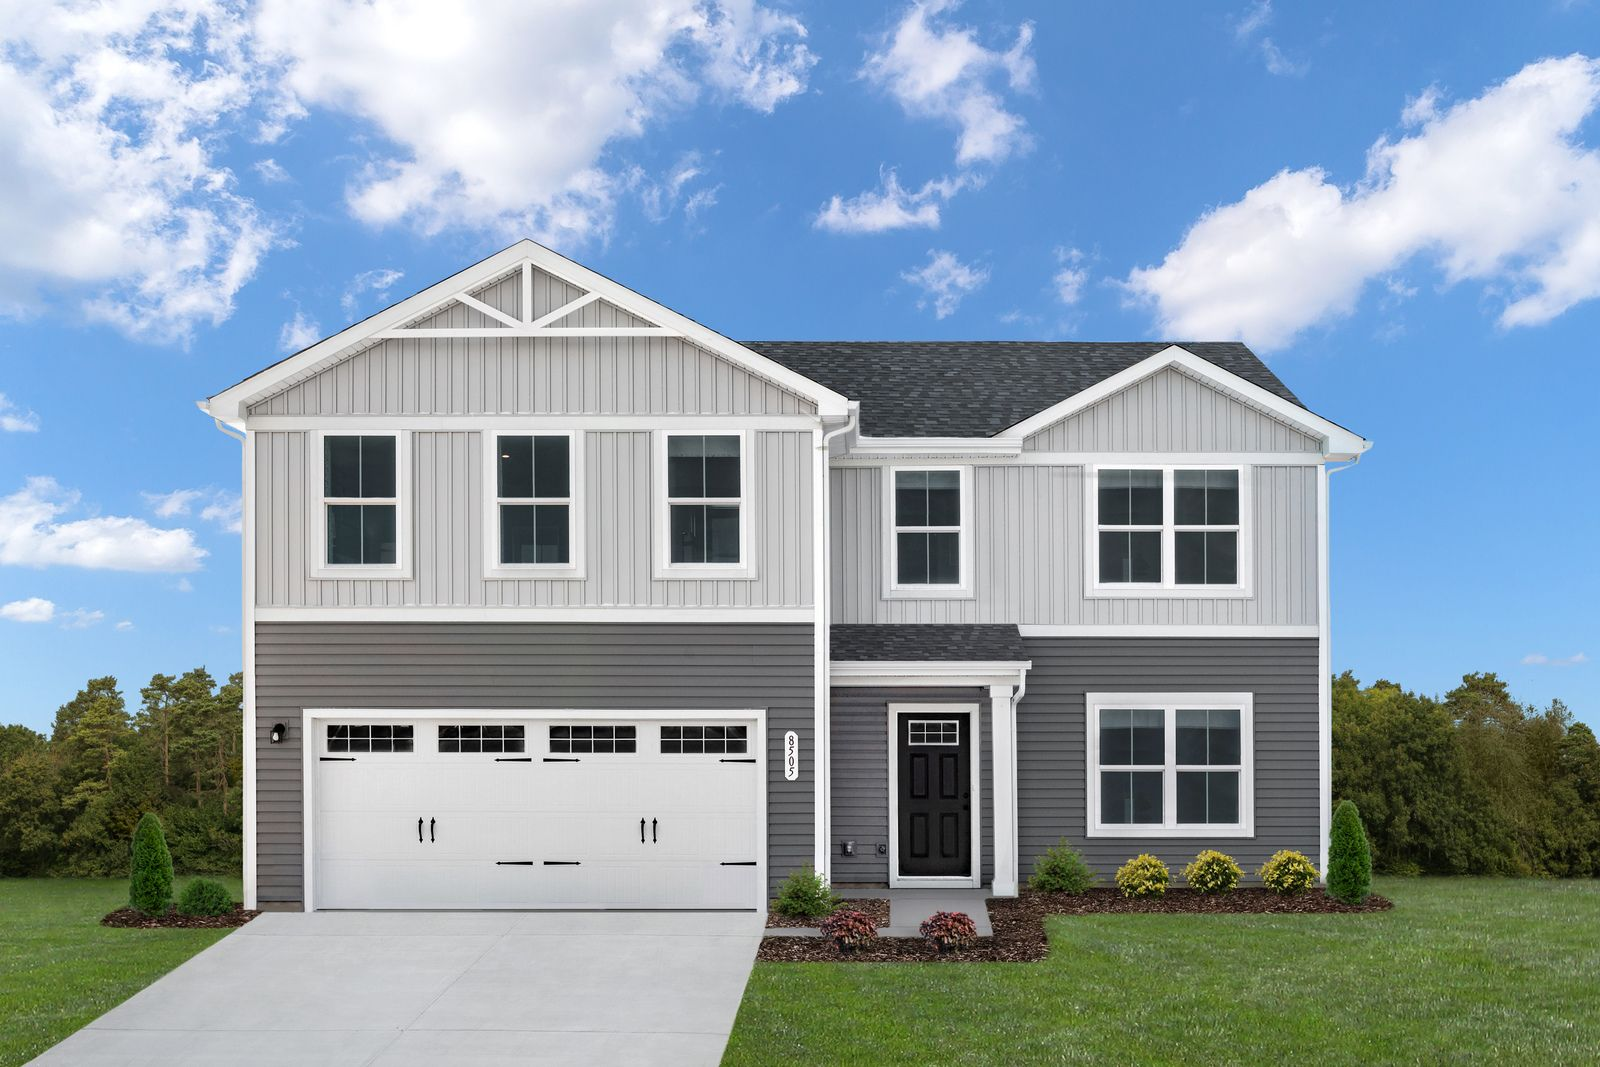 THORNTON GROVE - NOW OPEN:Stop renting - own an affordable new construction home only 8 miles from downtown Nashville!Schedule your virtual or in-person visit today!